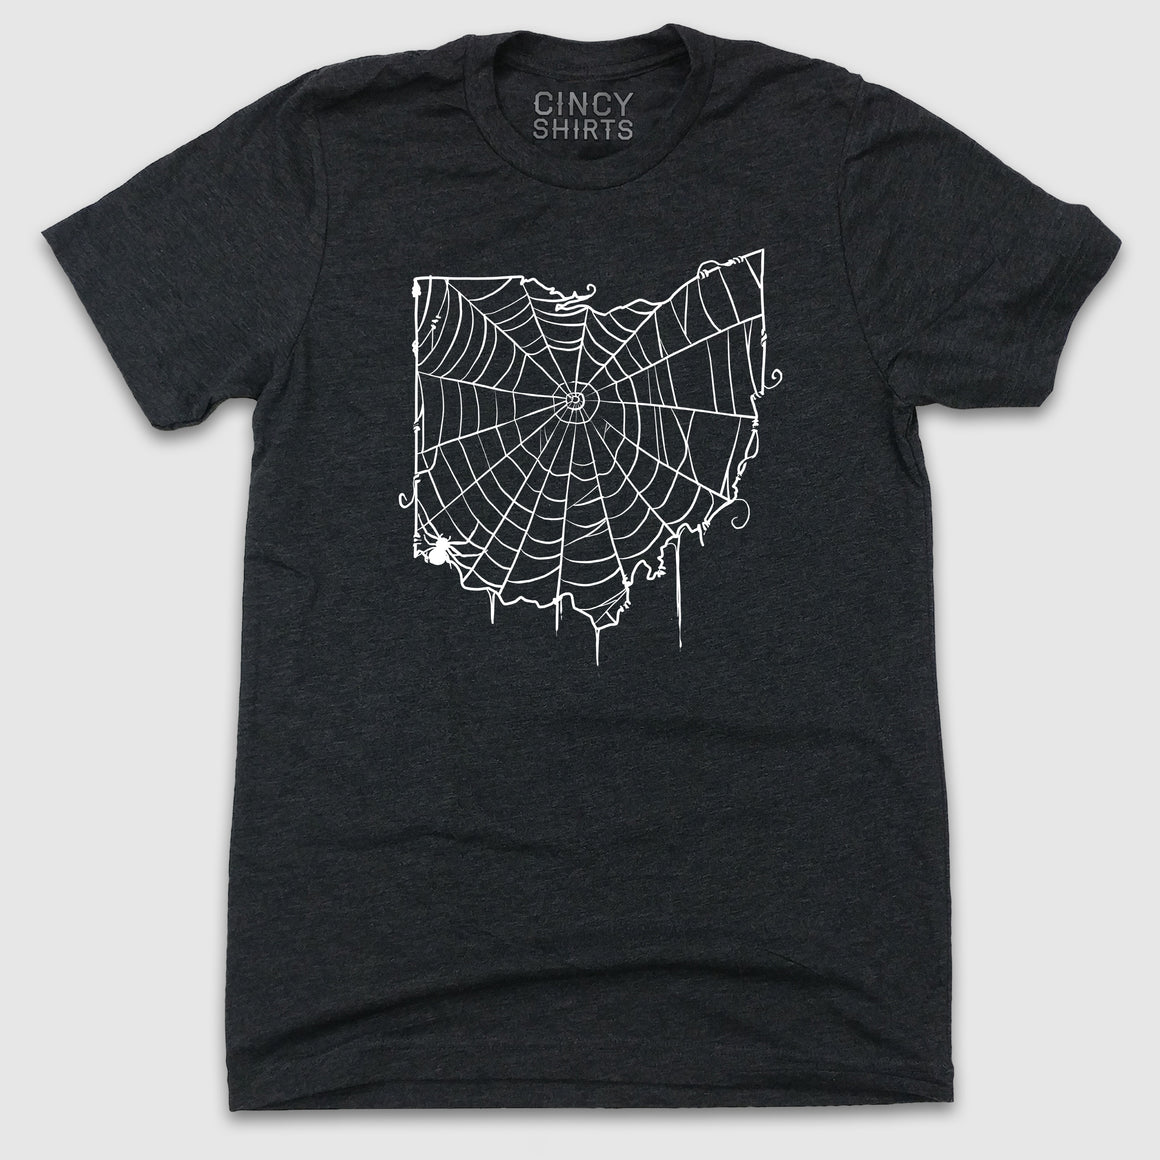 Cincinnati, Ohio Spiderweb - White Ink - Cincy Shirts